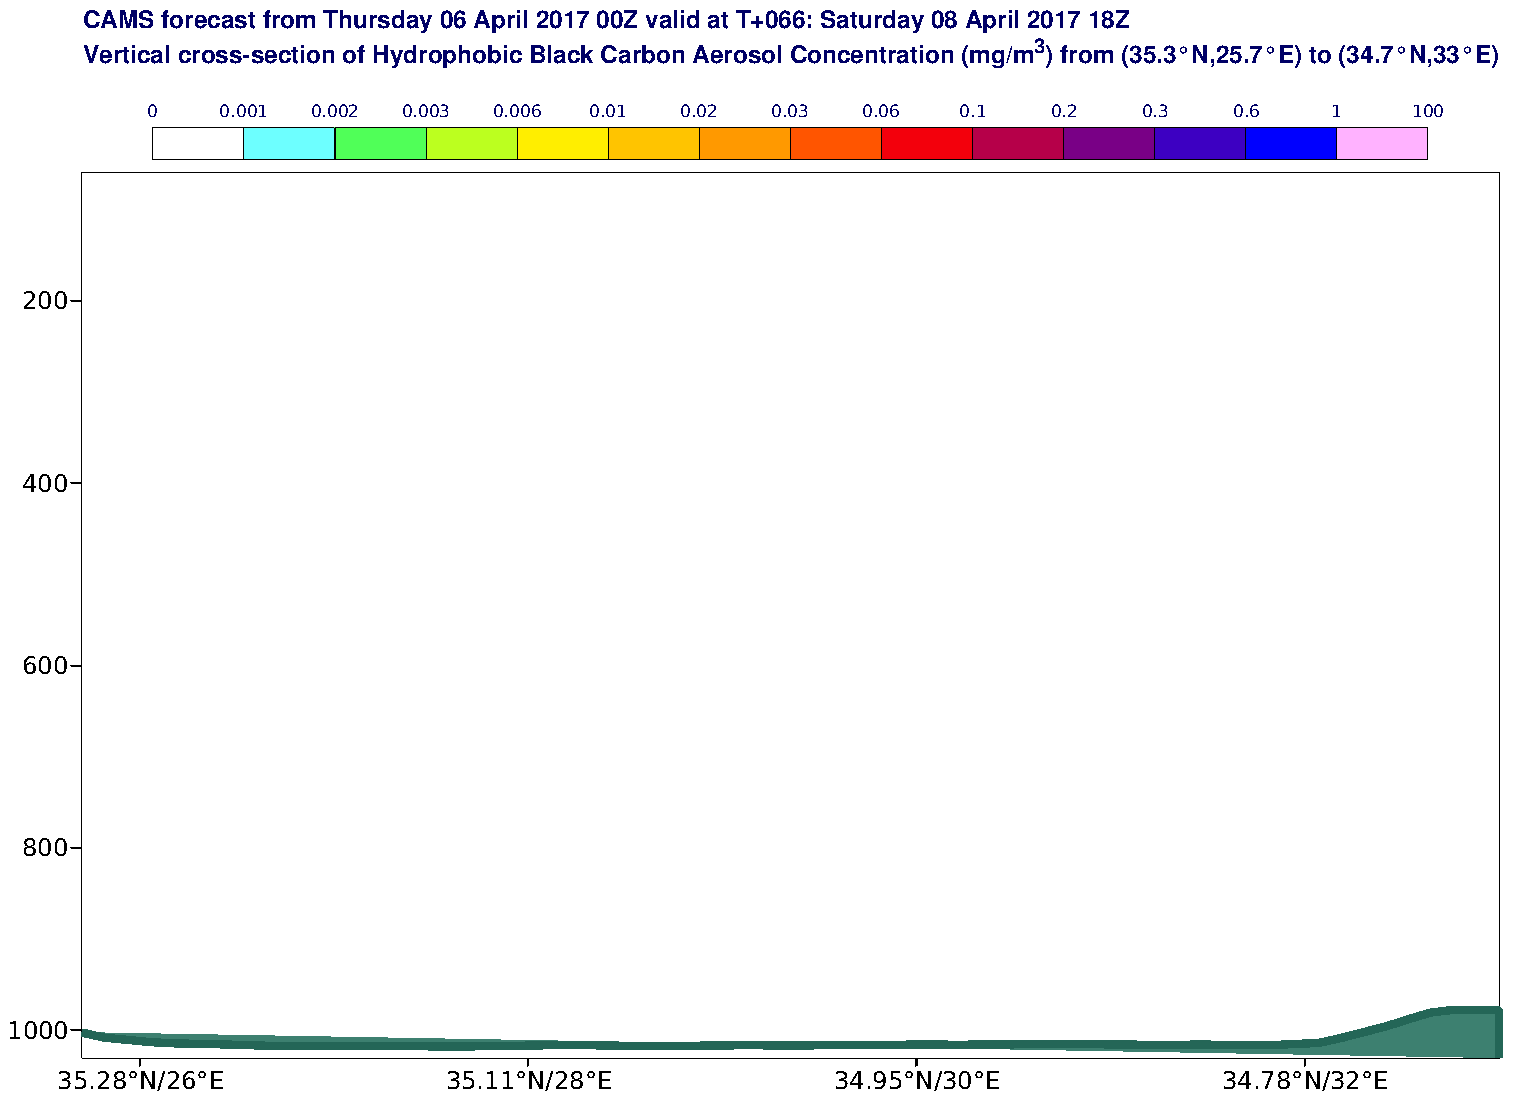 Vertical cross-section of Hydrophobic Black Carbon Aerosol Concentration (mg/m3) valid at T66 - 2017-04-08 18:00